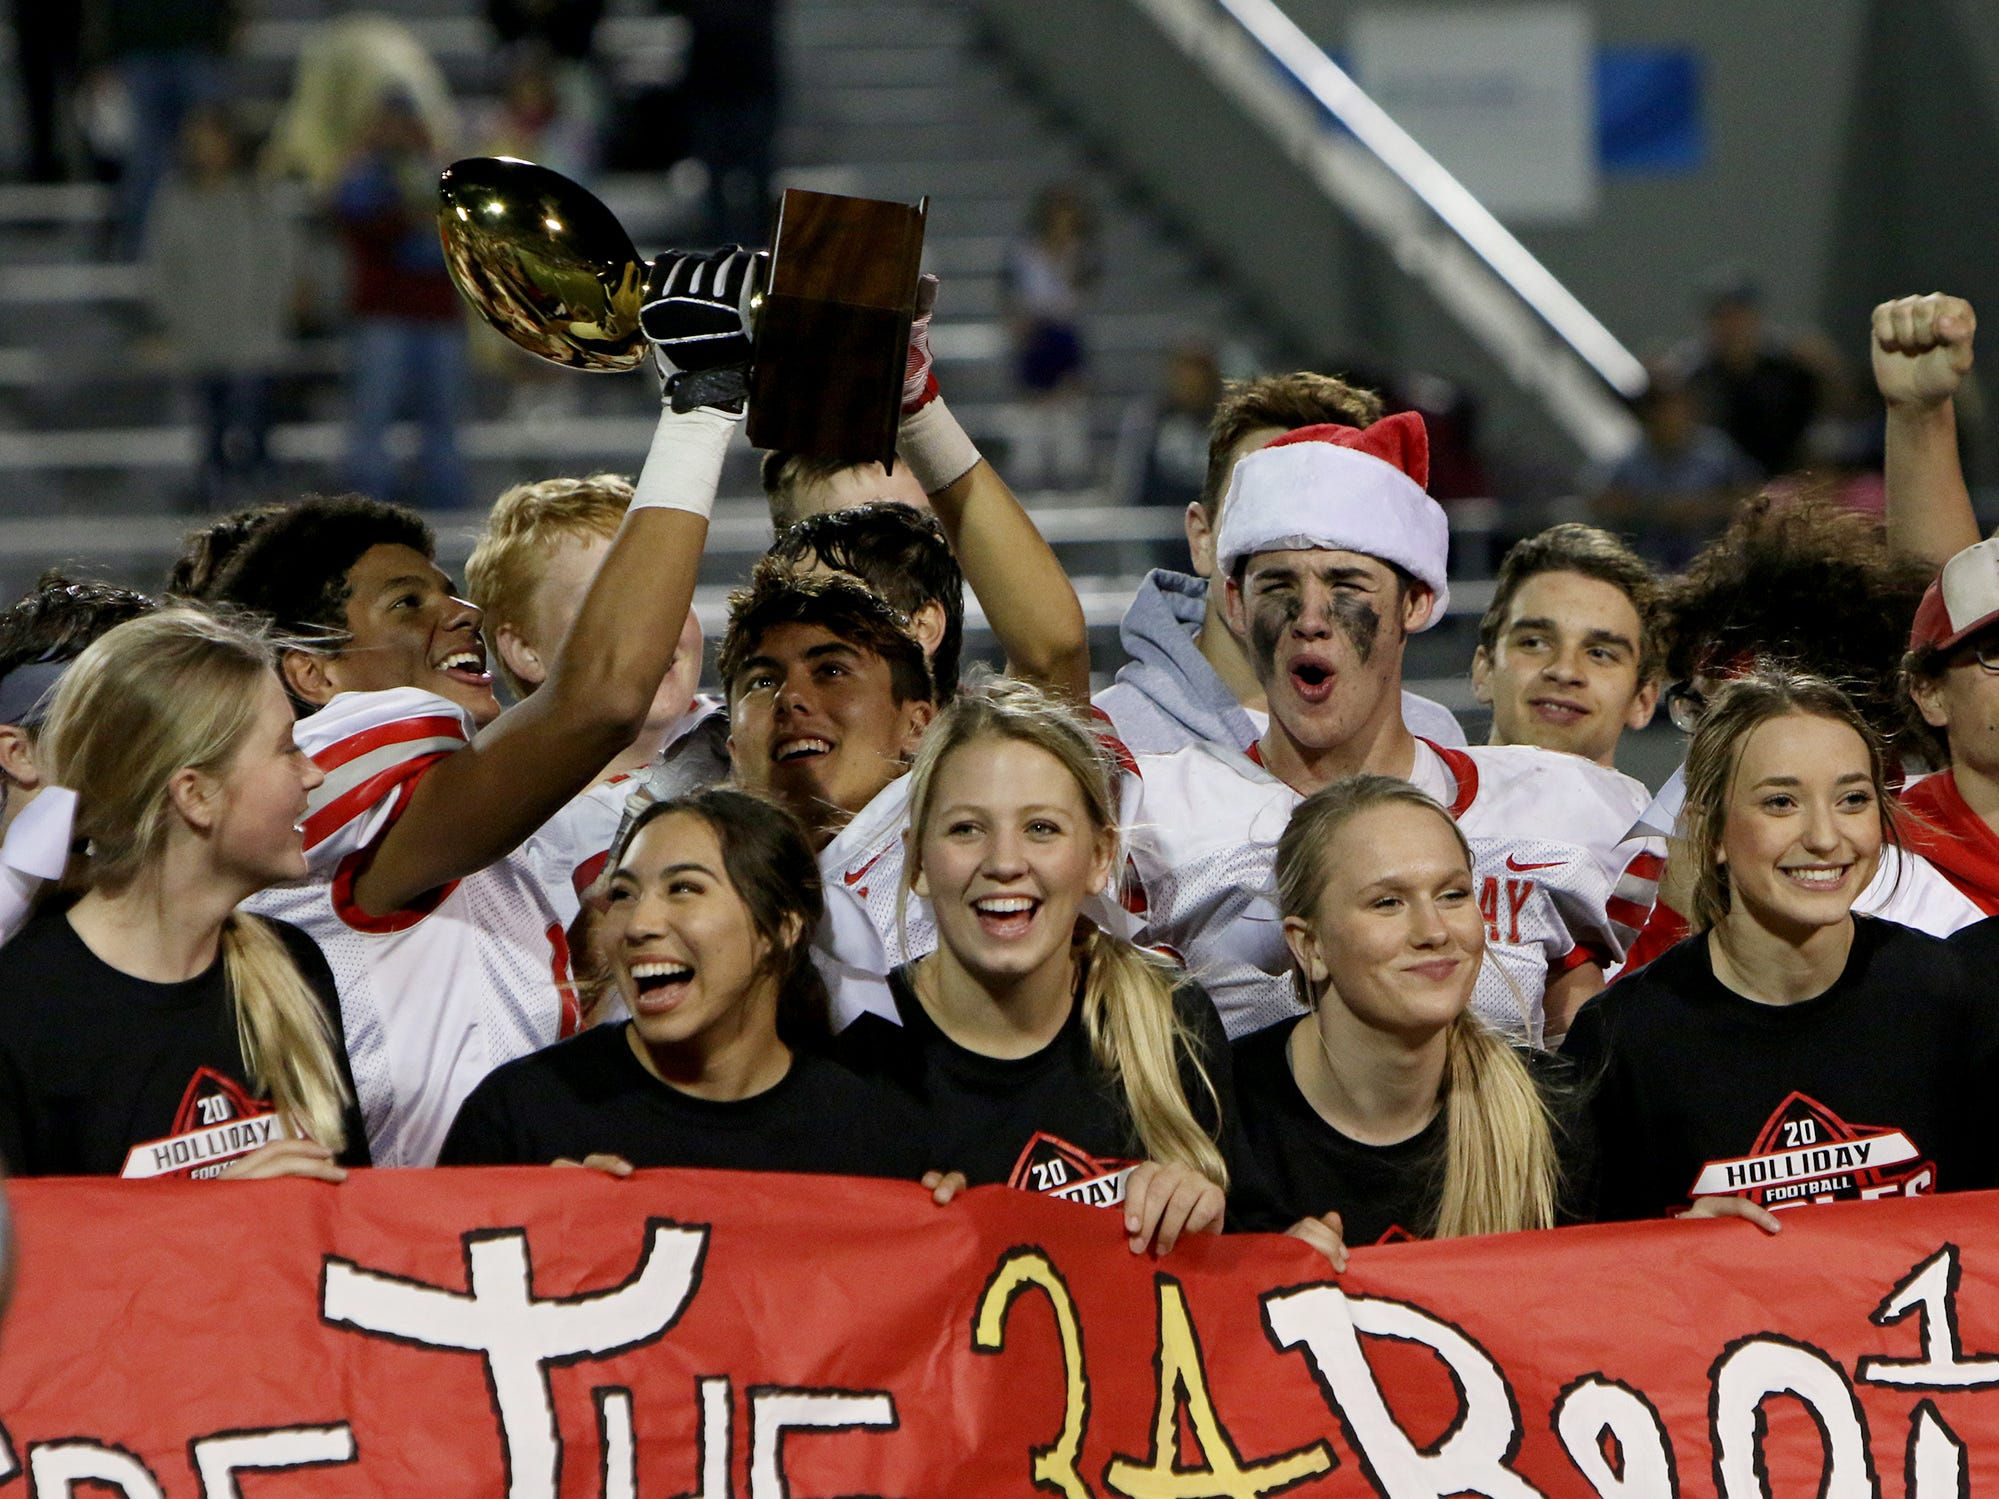 The Holliday Eagles celebrate their 38-9 win over Buffalo in the Region II-3A Div. II regional game Friday, Nov. 30, 2018, at Birdville ISD Athletics Complex in North Richland Hills.